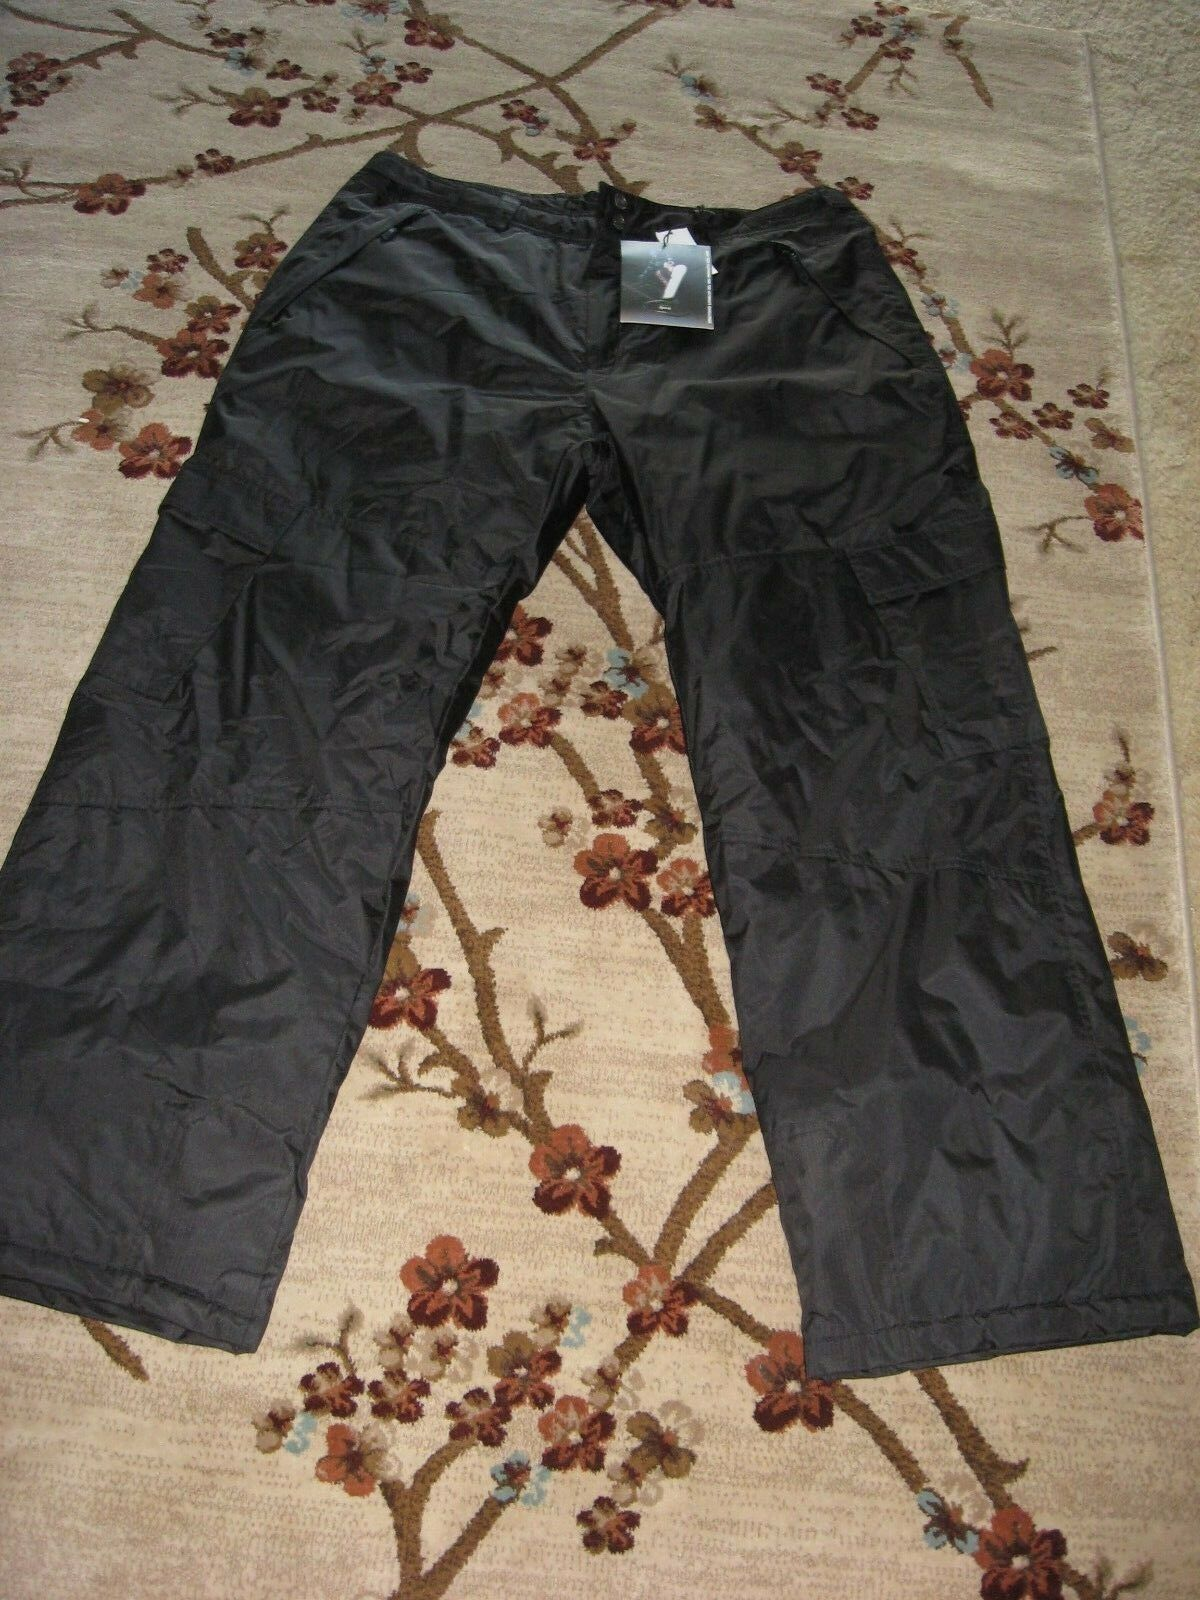 CB SPORTS HIGH TECH SKI WEAR PANTS  SIZE 2XL  your satisfaction is our target